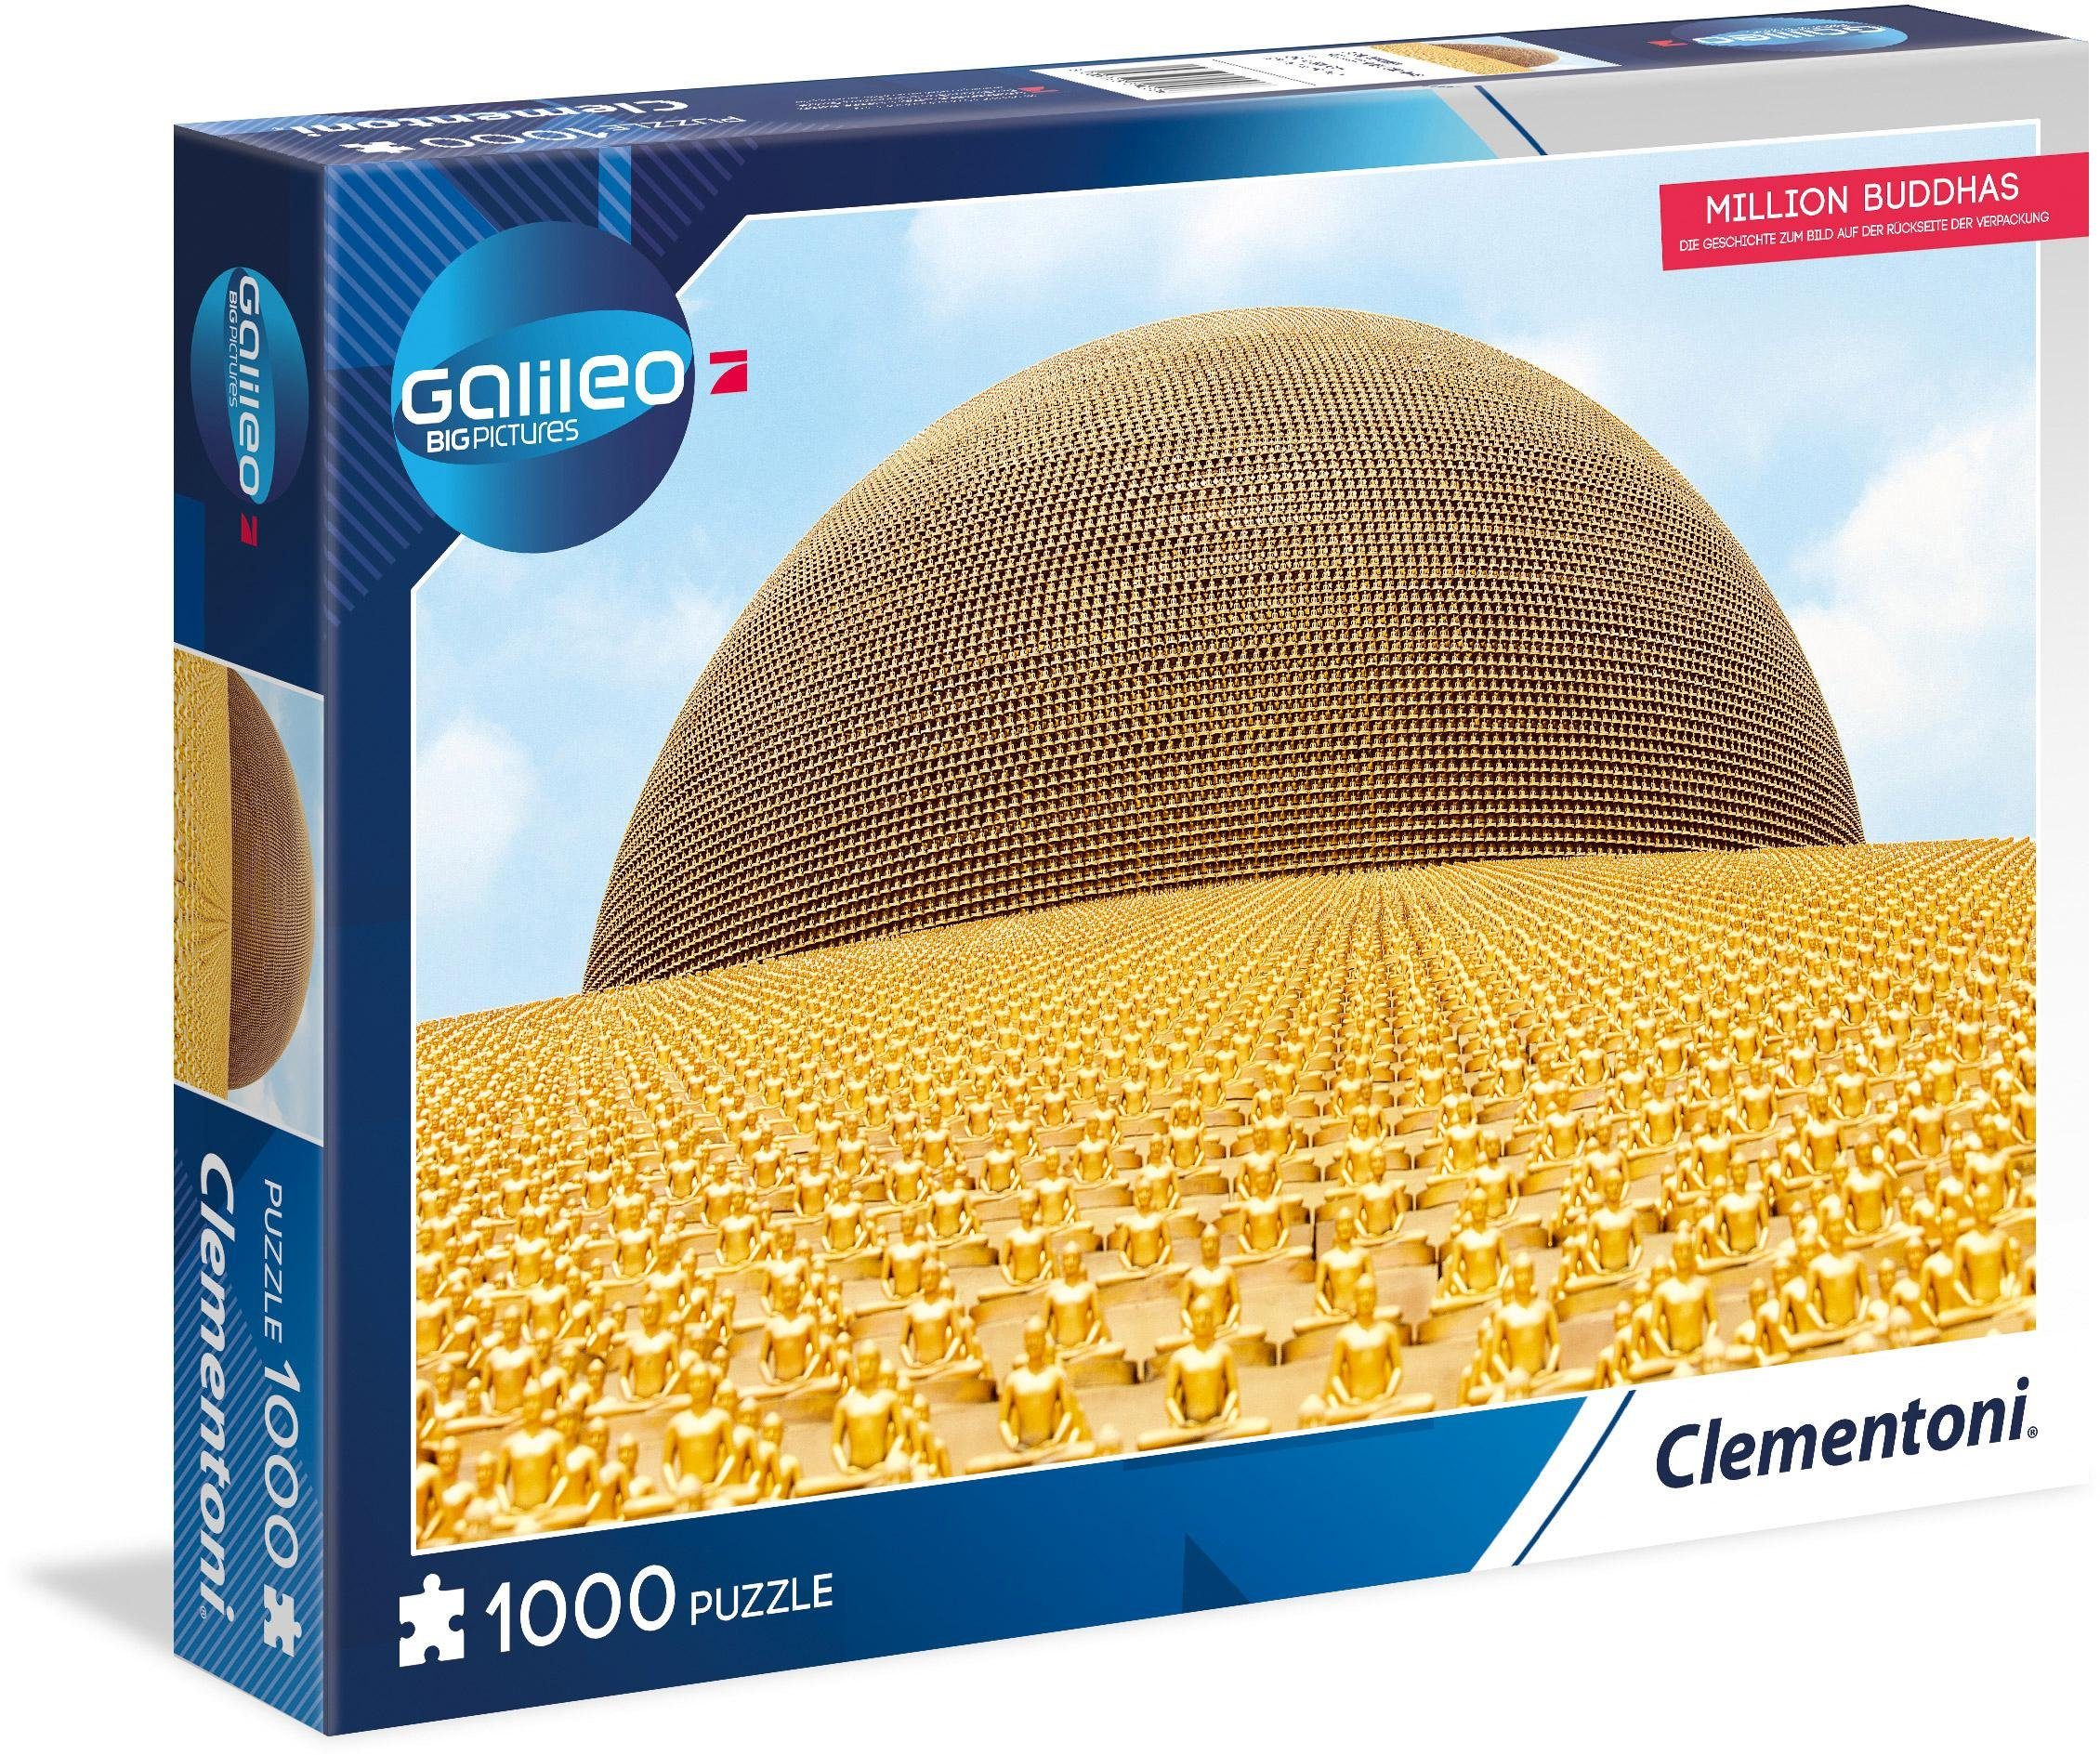 Clementoni Puzzle, 1000 Teile, »Galileo Million Buddhas«